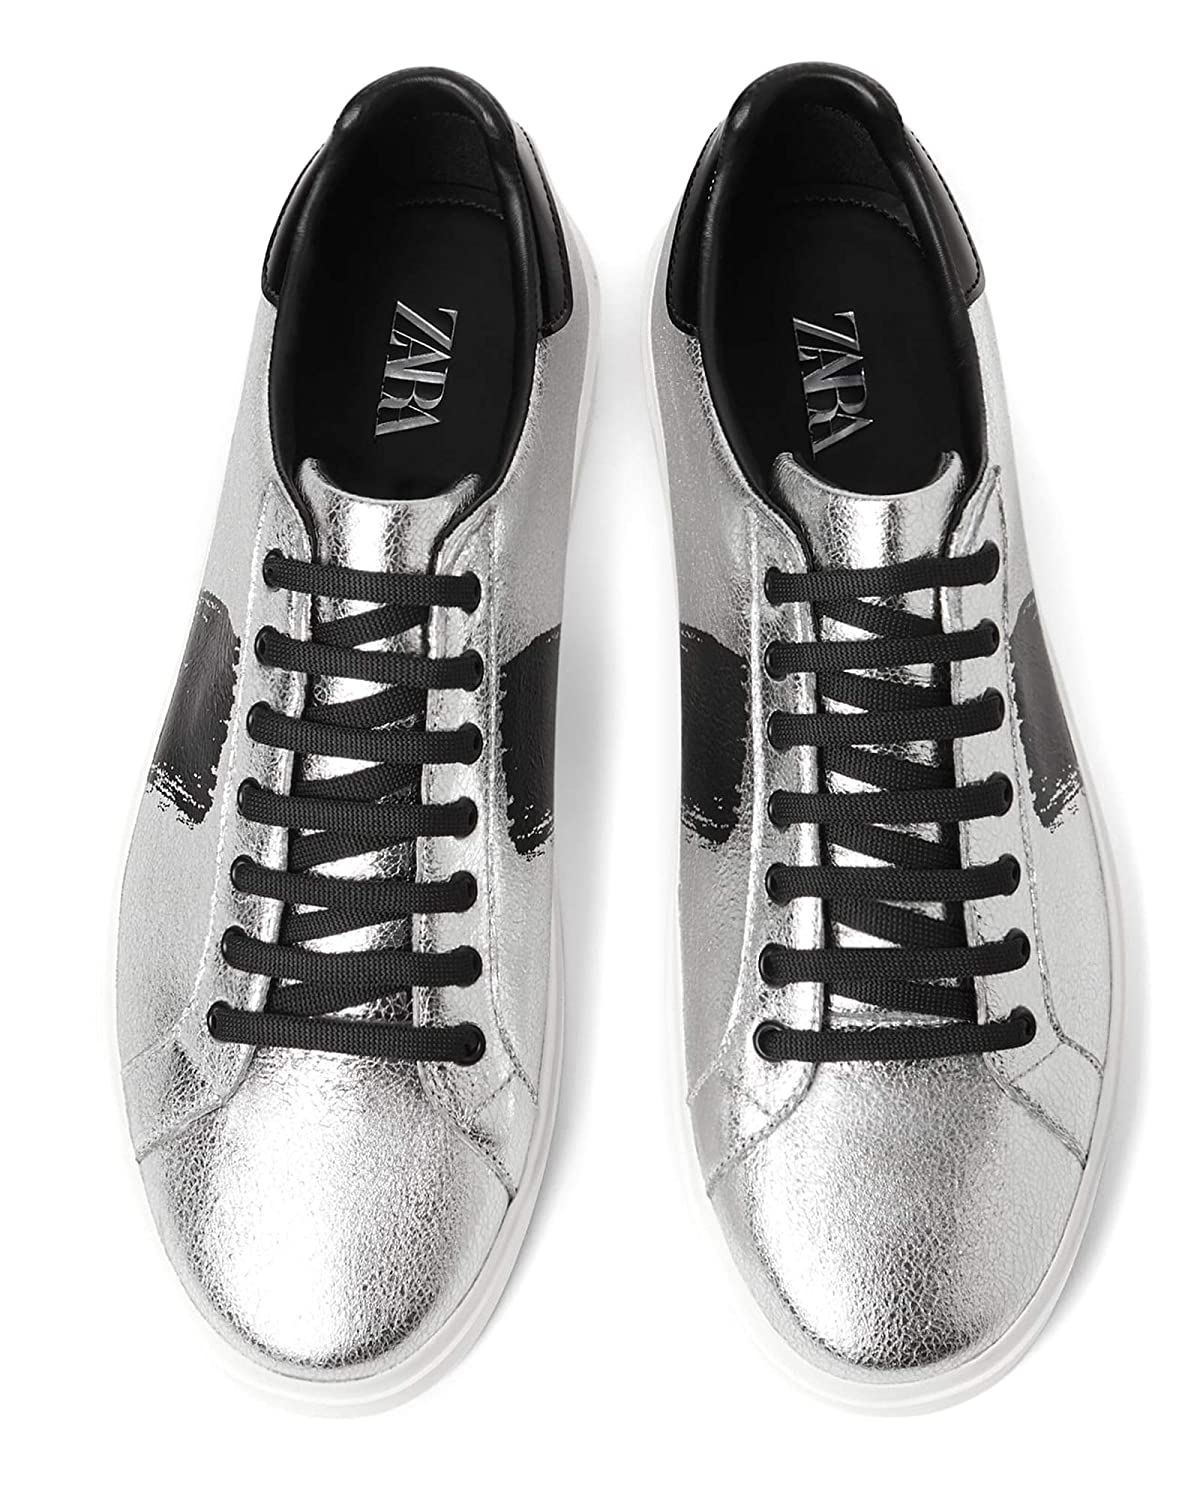 214ce2906d6 Zara Men's Silver Plimsolls 2227/002: Amazon.co.uk: Shoes & Bags